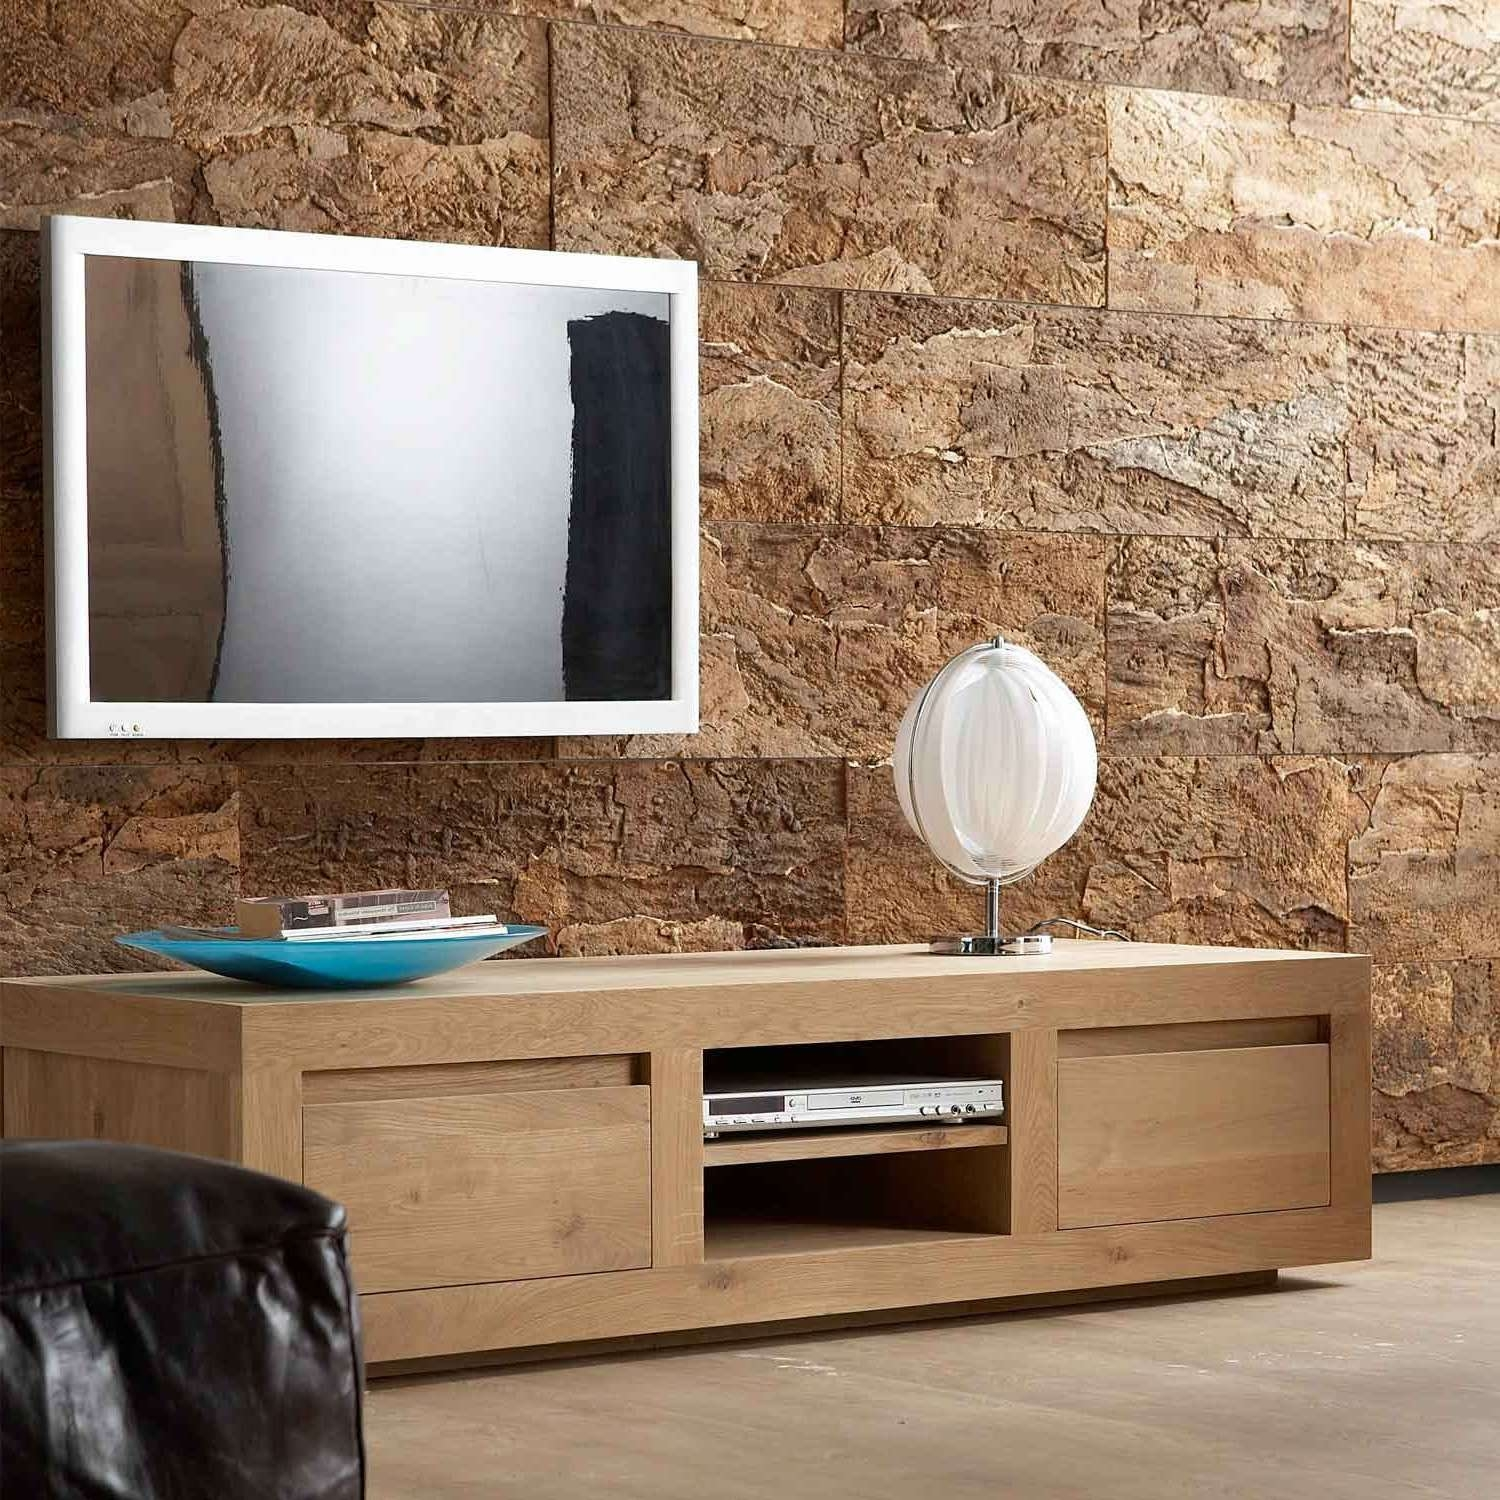 Home Design Modern Black Tv Stand With Storage Unit Feat Floating Regarding Modern Oak Tv Stands (View 12 of 15)